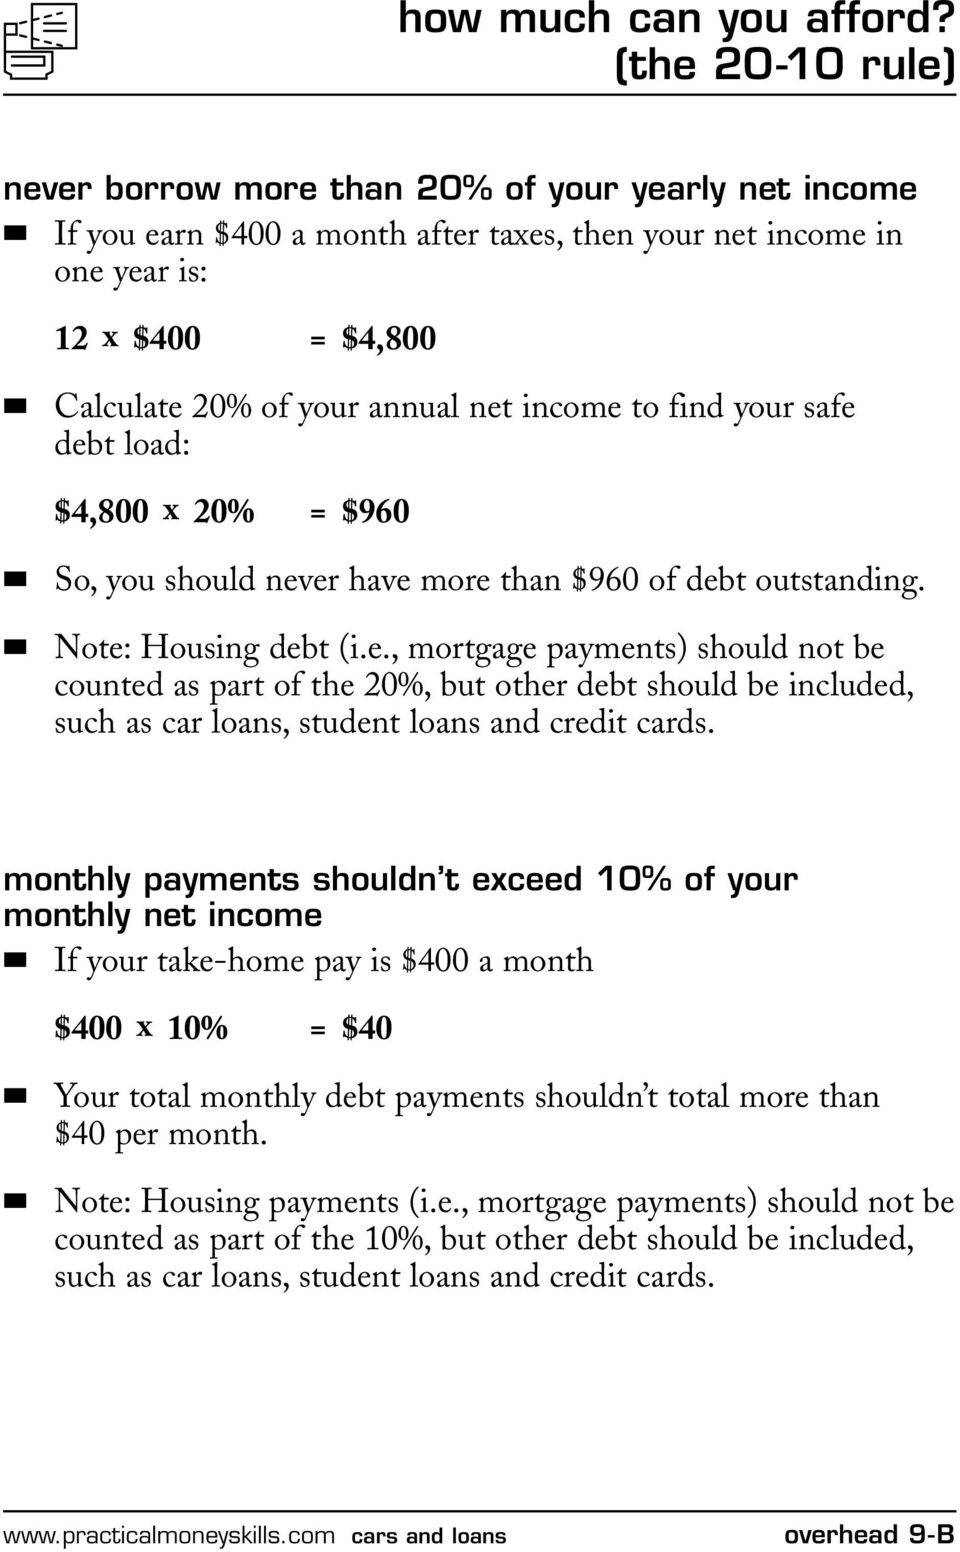 income to find your safe debt load: $4,800 x 20% = $960 So, you should never have more than $960 of debt outstanding. Note: Housing debt (i.e., mortgage payments) should not be counted as part of the 20%, but other debt should be included, such as car loans, student loans and credit cards.